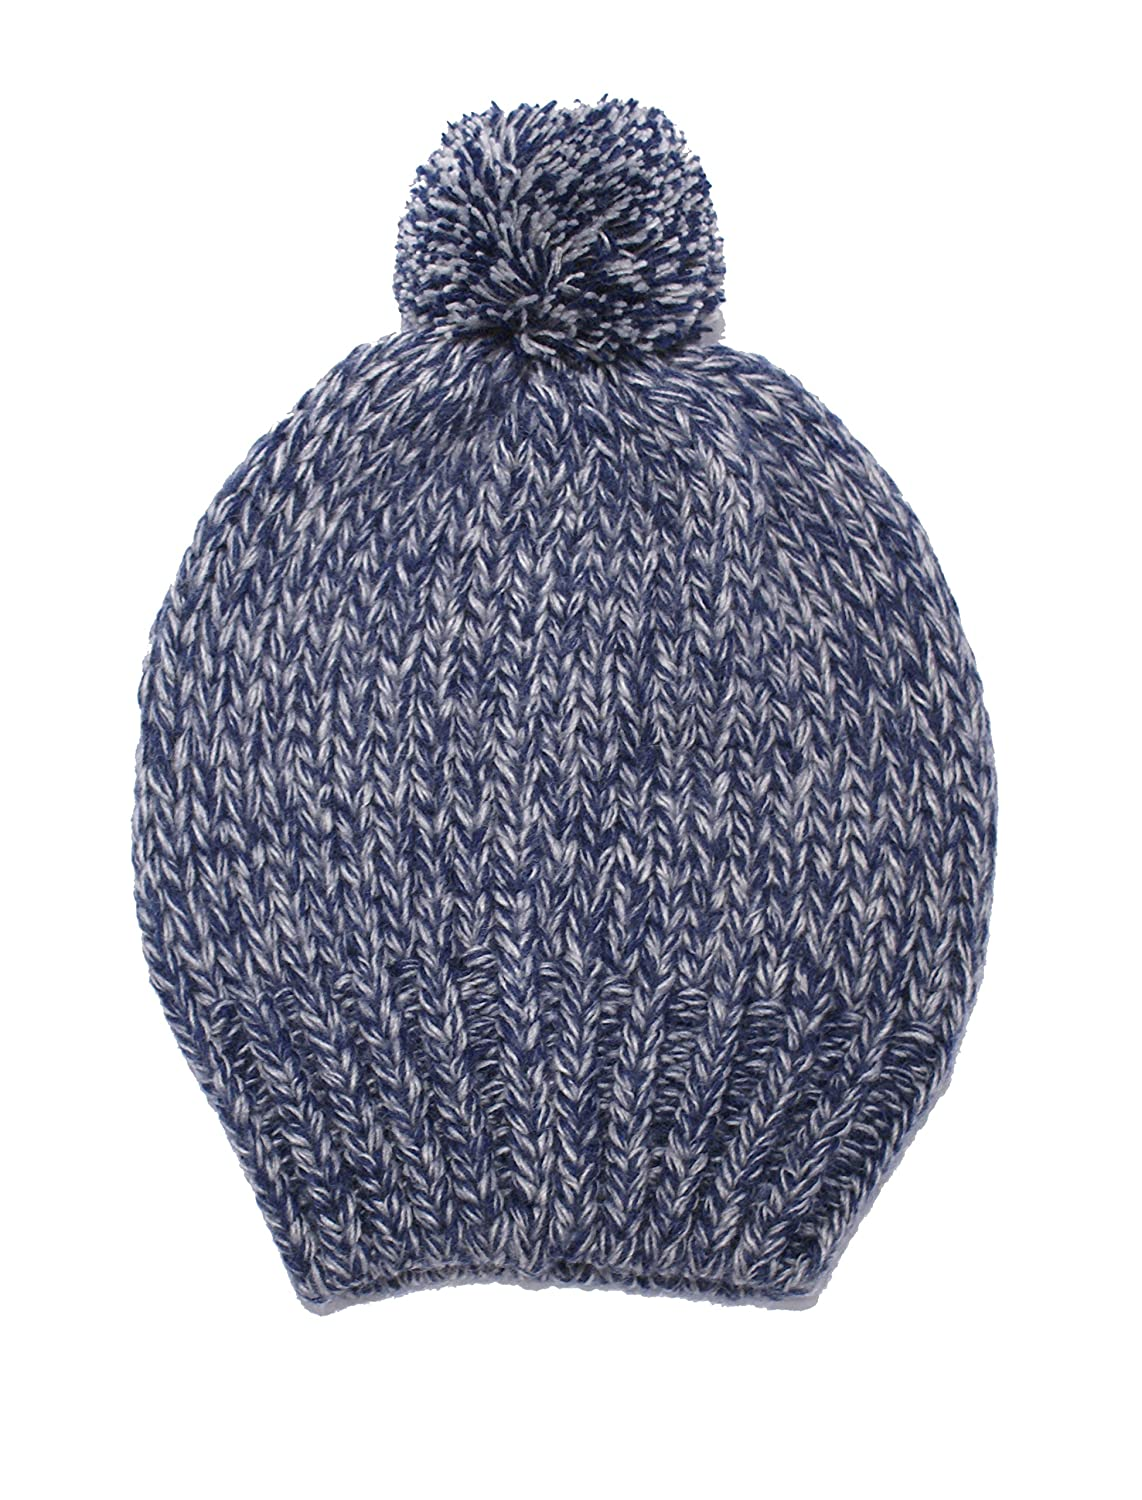 Style 1255-GN BUSTER Kids Knit Hats with Self Yarn Pom-Poms